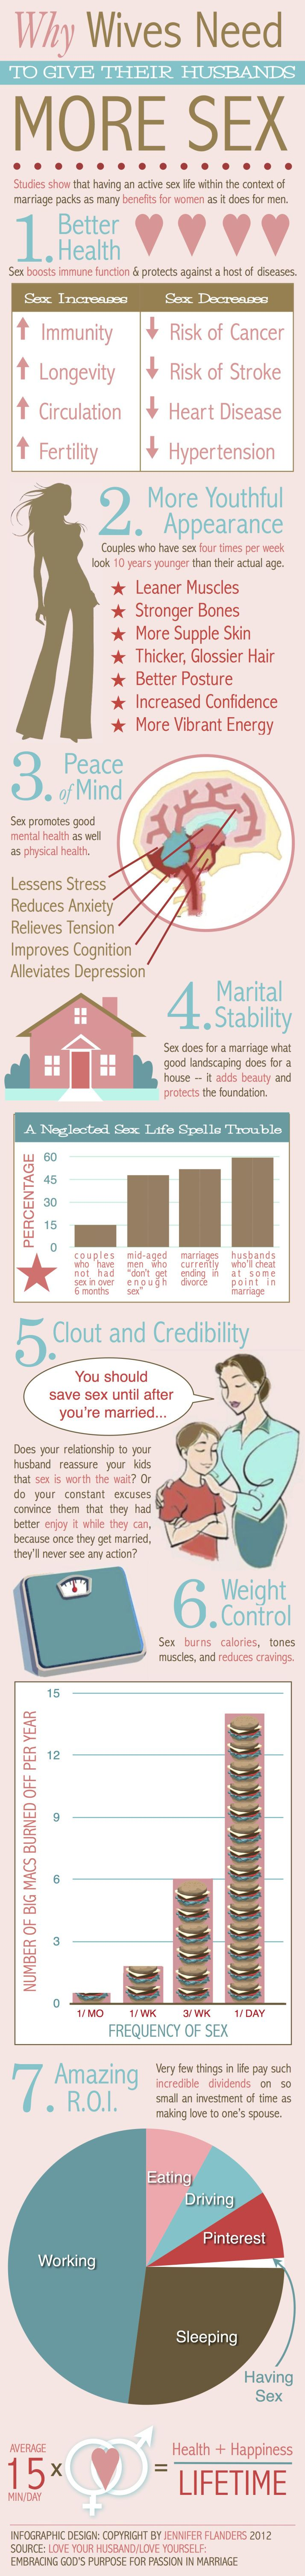 7 Reasons to Prioritize Sex in Marriage... Here's a handy chart that details just a few of the myriad benefits available to couples who choose not to neglect marital intimacy. I've addressed these remarks to wives because (1) I am writing to women in the